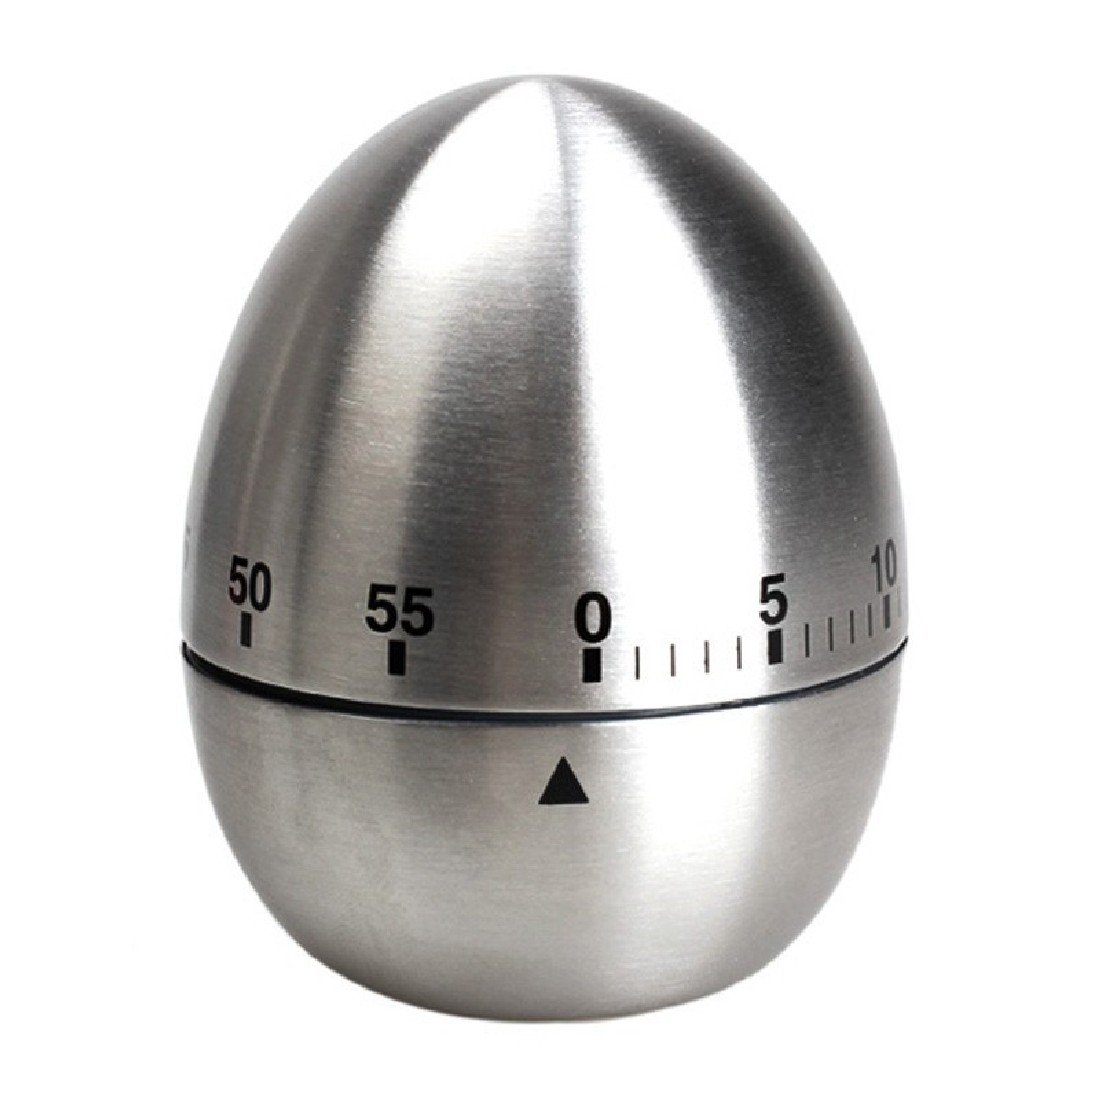 Stainless Steel 60 Minutes Kitchen Timer Egg Shape Mechanical Dial BU-Bauty TRTA11A